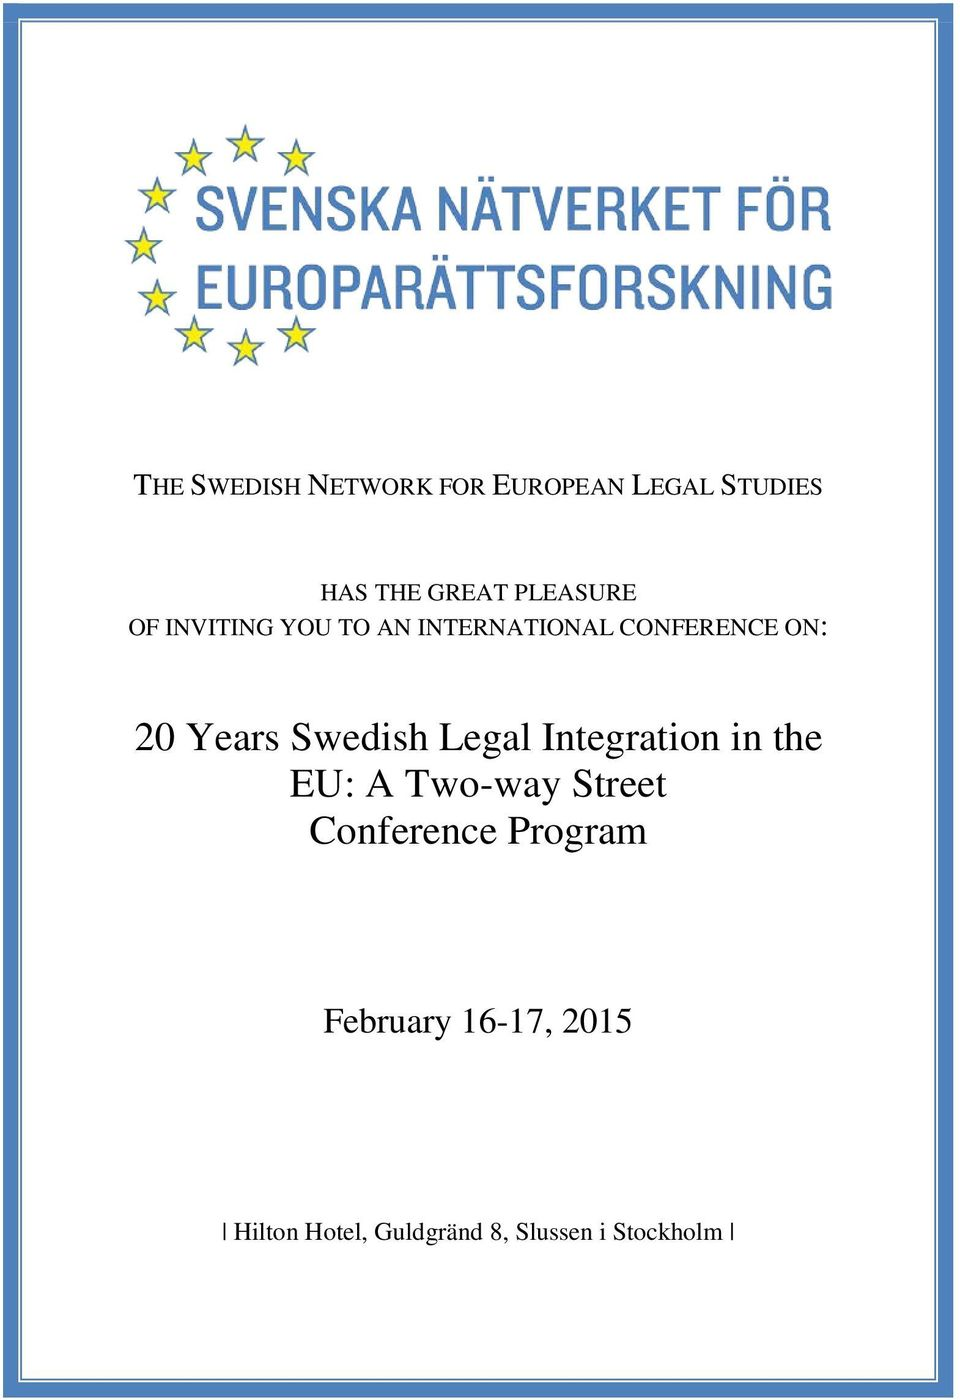 Years Swedish Legal Integration in the EU: A Two-way Street